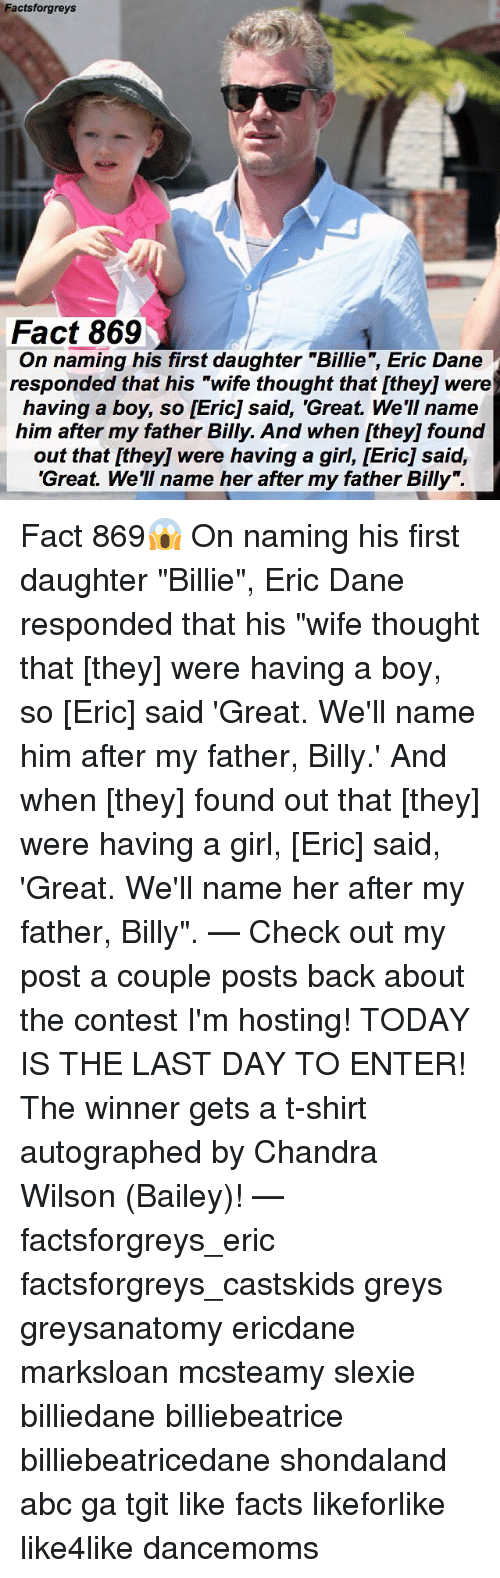 """Conteste: Factsforgreys  Fact 869  g his first daughter """"Billie, Eric Dane  On naming his first daughter """"Billie"""", Eric Dane  responded that his """"wife thought that [they] were  having a boy, so [Eric] said, 'Great. We'II name  him after my father Billy. And when [they] found  out that [they] were having a girl, [Eric] said,  'Great. We'll name her after my father Billy"""". Fact 869😱 On naming his first daughter """"Billie"""", Eric Dane responded that his """"wife thought that [they] were having a boy, so [Eric] said 'Great. We'll name him after my father, Billy.' And when [they] found out that [they] were having a girl, [Eric] said, 'Great. We'll name her after my father, Billy"""". — Check out my post a couple posts back about the contest I'm hosting! TODAY IS THE LAST DAY TO ENTER! The winner gets a t-shirt autographed by Chandra Wilson (Bailey)! — factsforgreys_eric factsforgreys_castskids greys greysanatomy ericdane marksloan mcsteamy slexie billiedane billiebeatrice billiebeatricedane shondaland abc ga tgit like facts likeforlike like4like dancemoms"""